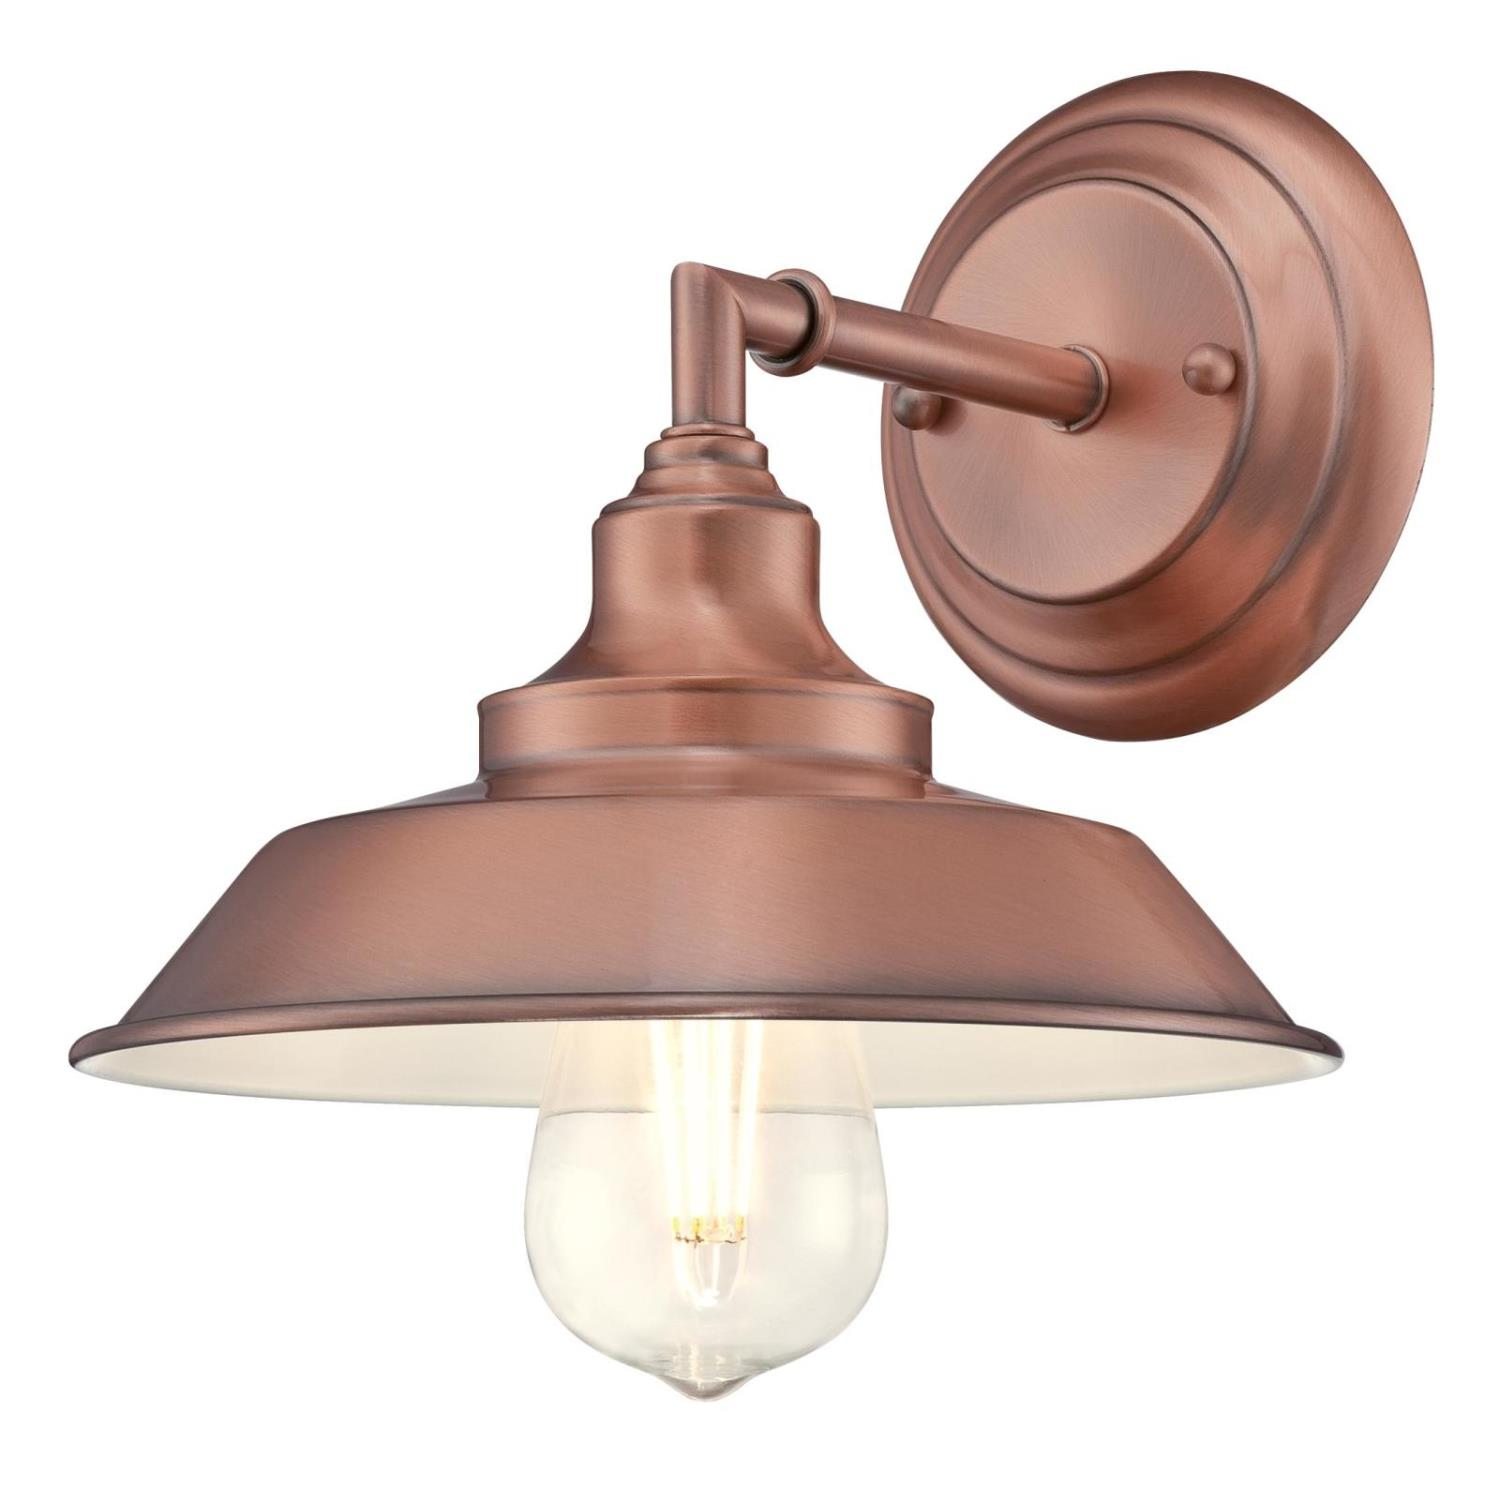 1 Light Wall Fixture Washed Copper Finish